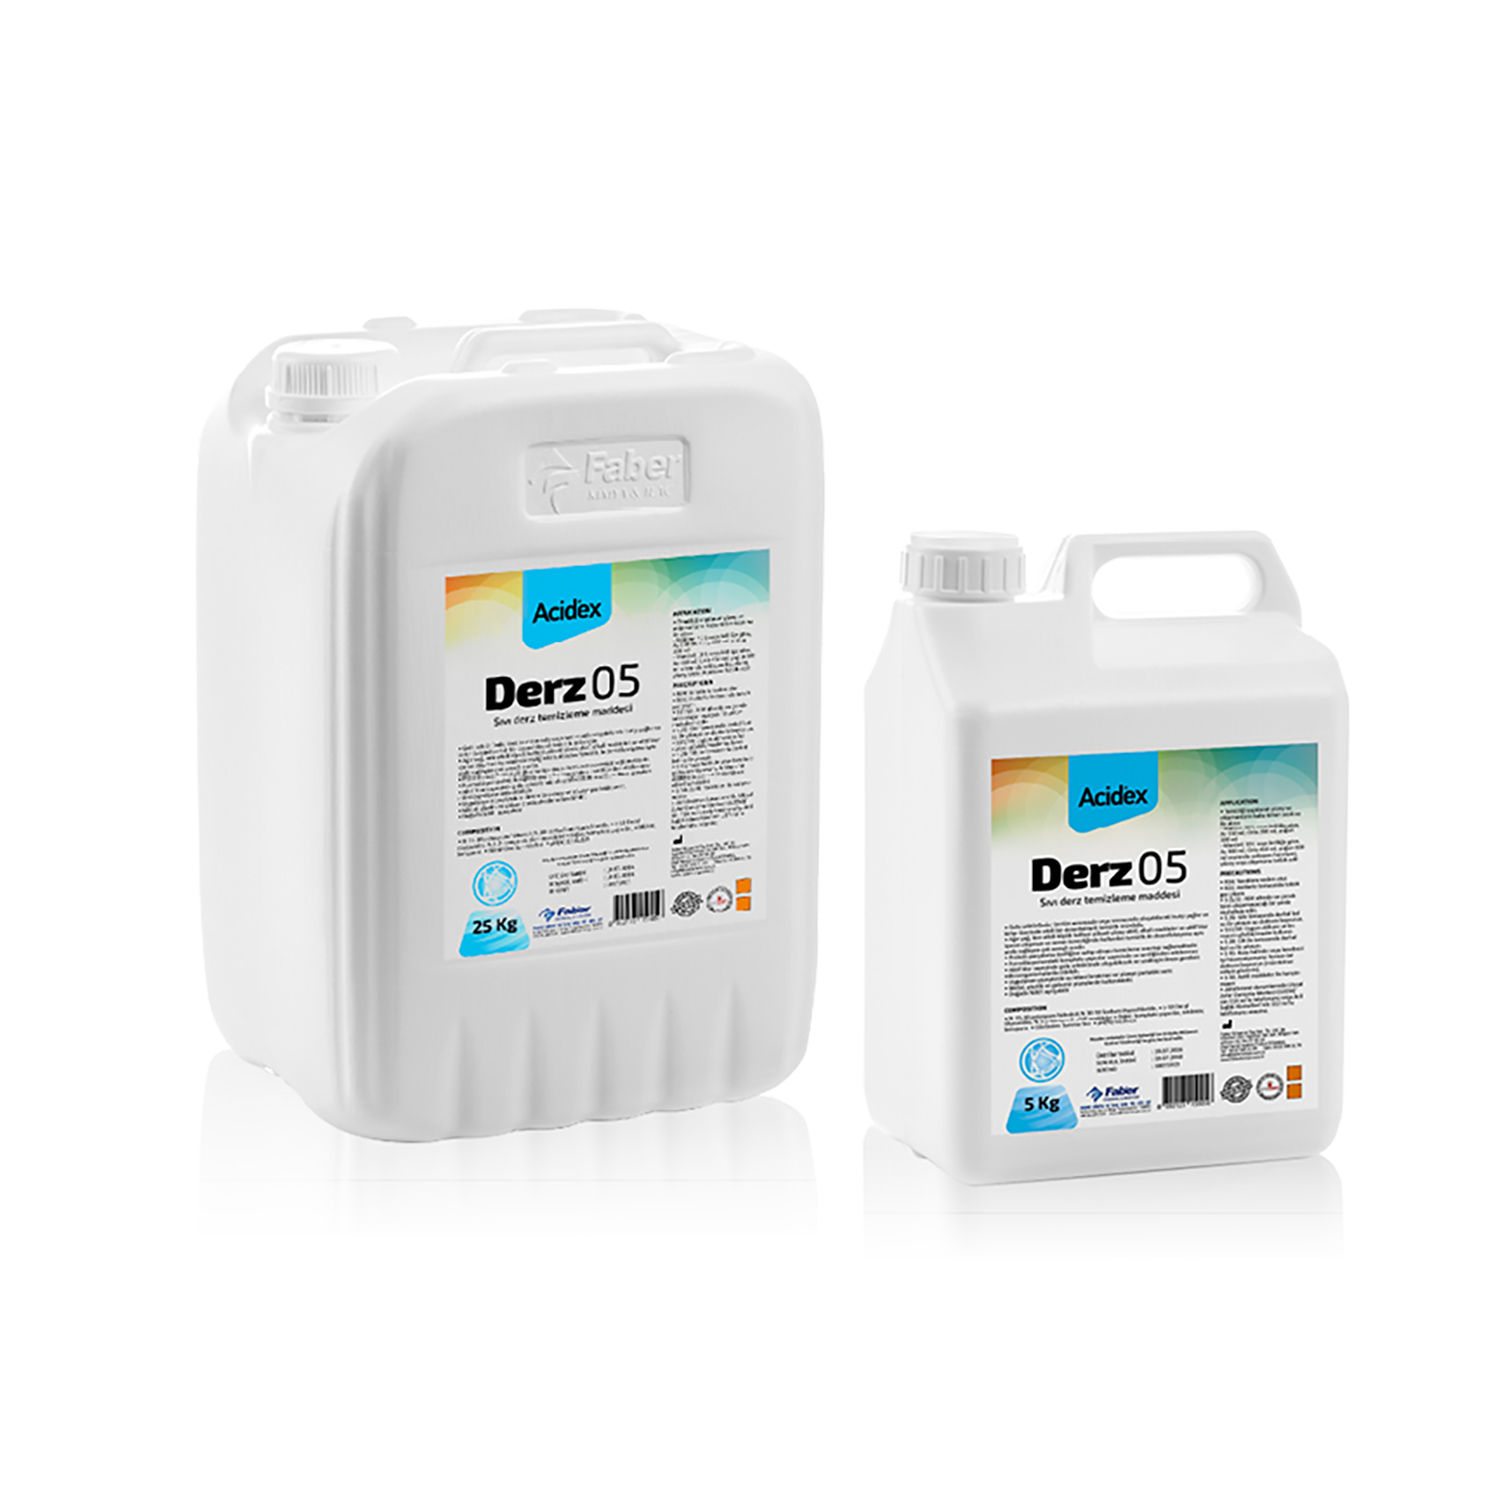 Acidex Derz 05 Liquid